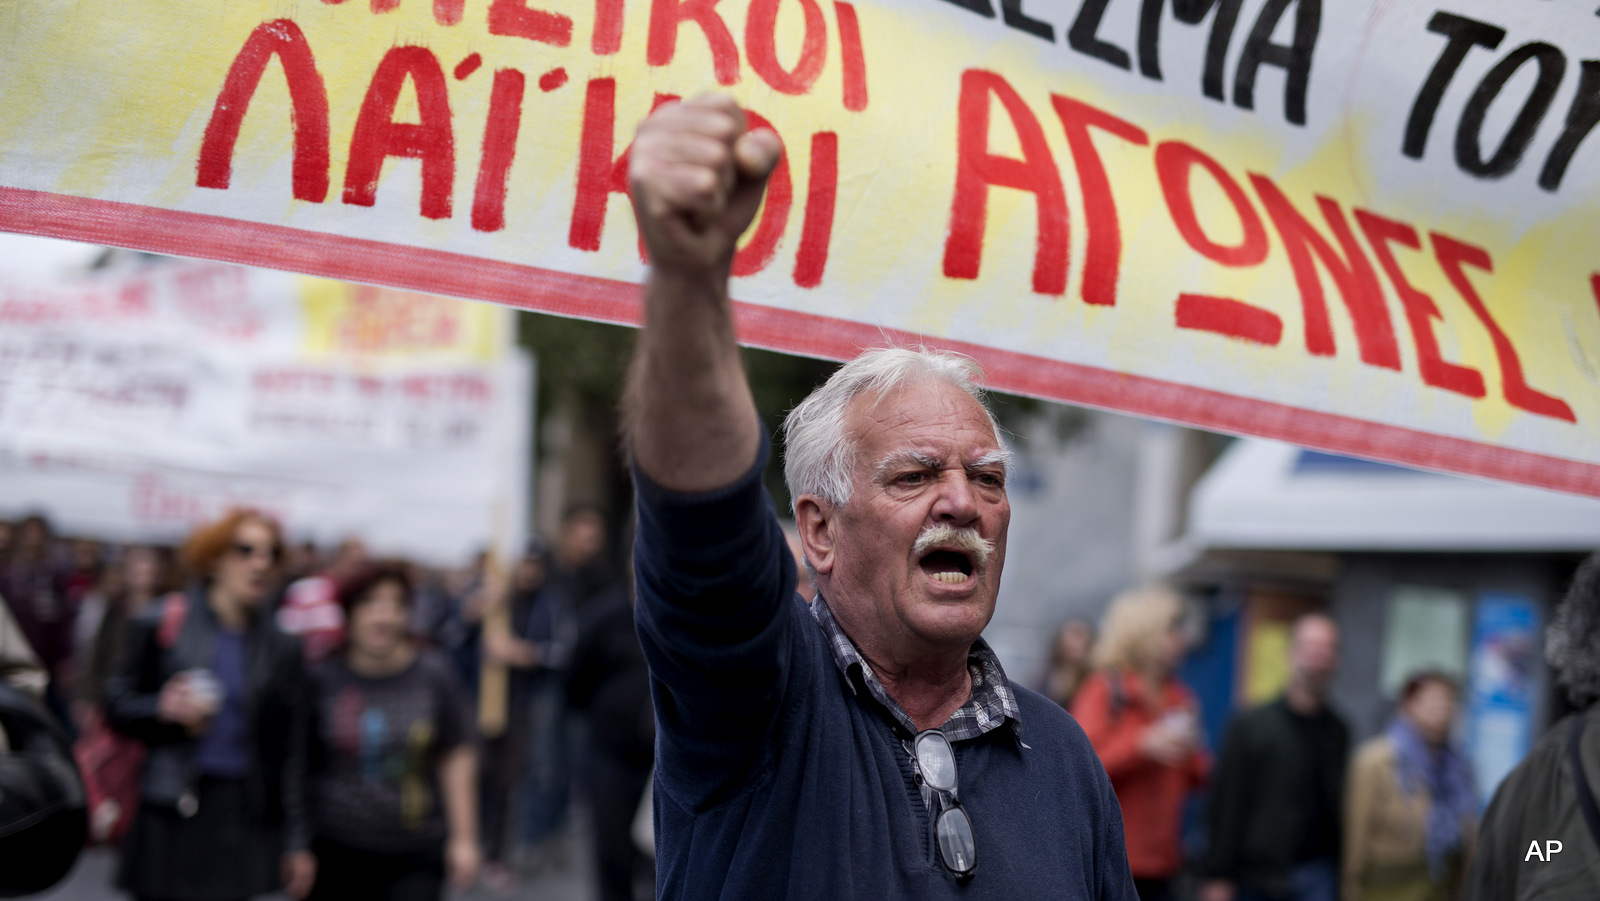 A protester chants anti austerity slogans during a demonstration in central Athens, on Friday, May 6, 2016. A protester chants anti austerity slogans during a demonstration in central Athens, on Friday, May 6, 2016.